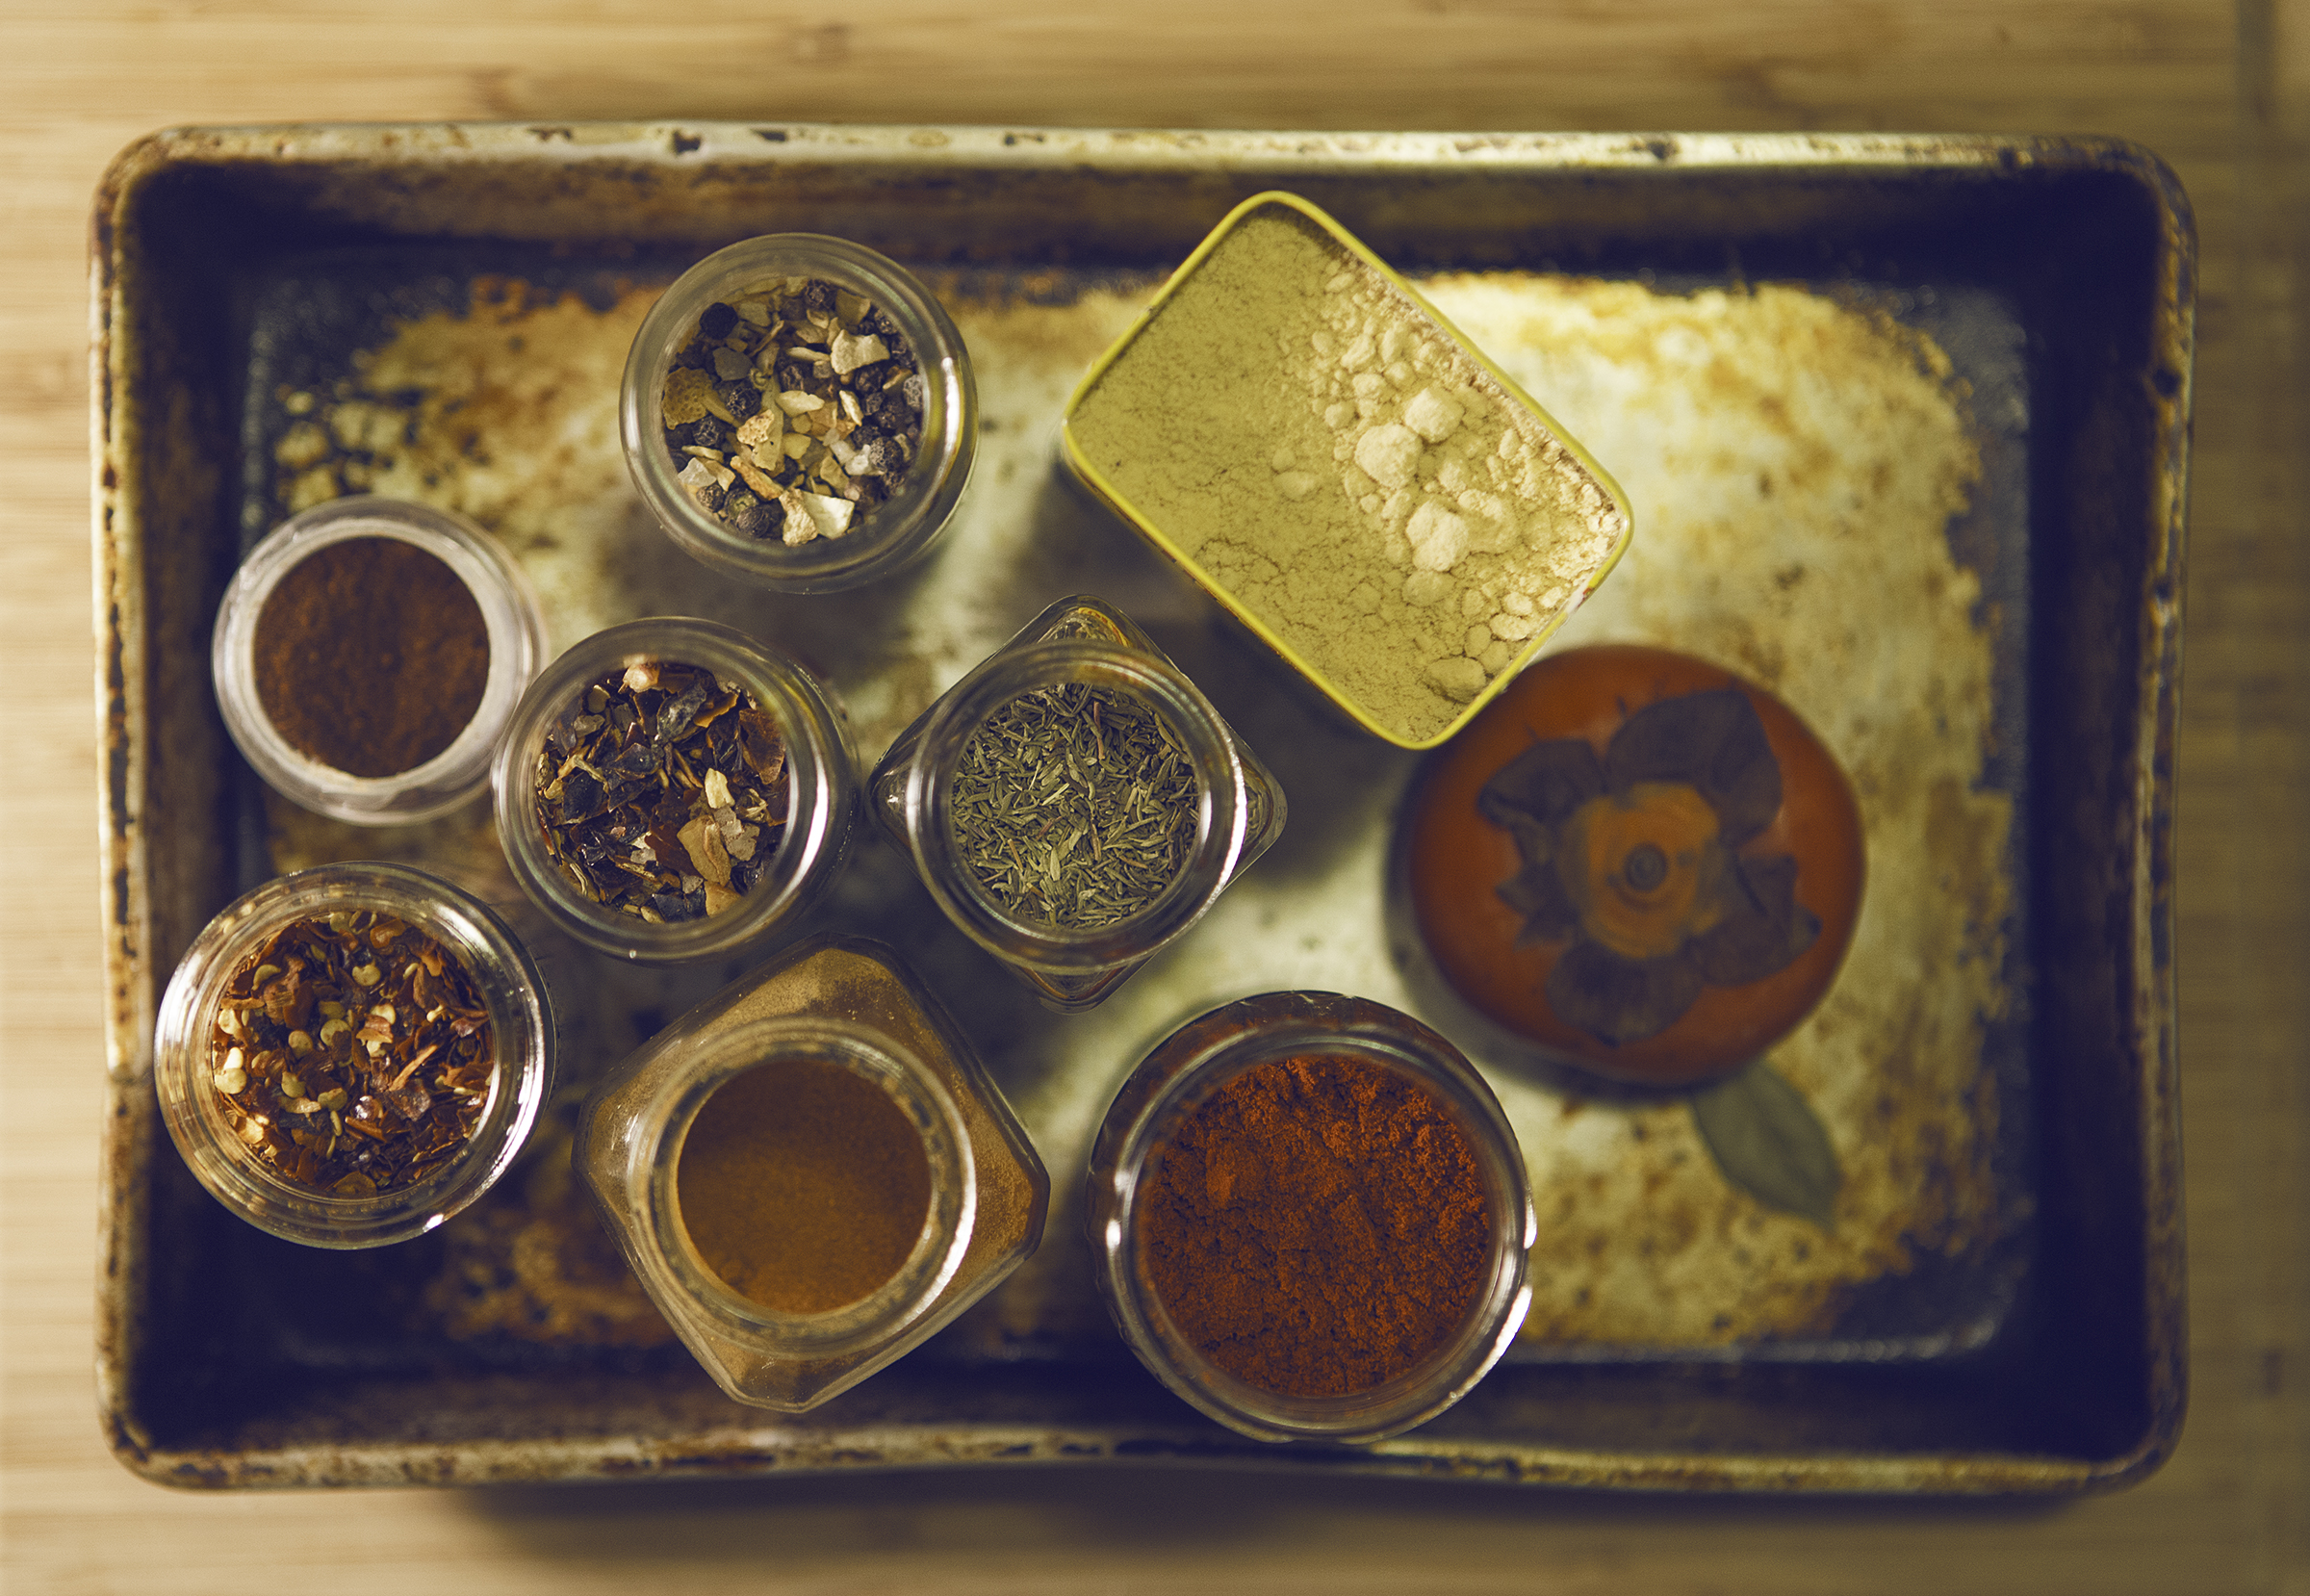 Playing around with spices for a change - for Alex's currently-being-born-food-blog.